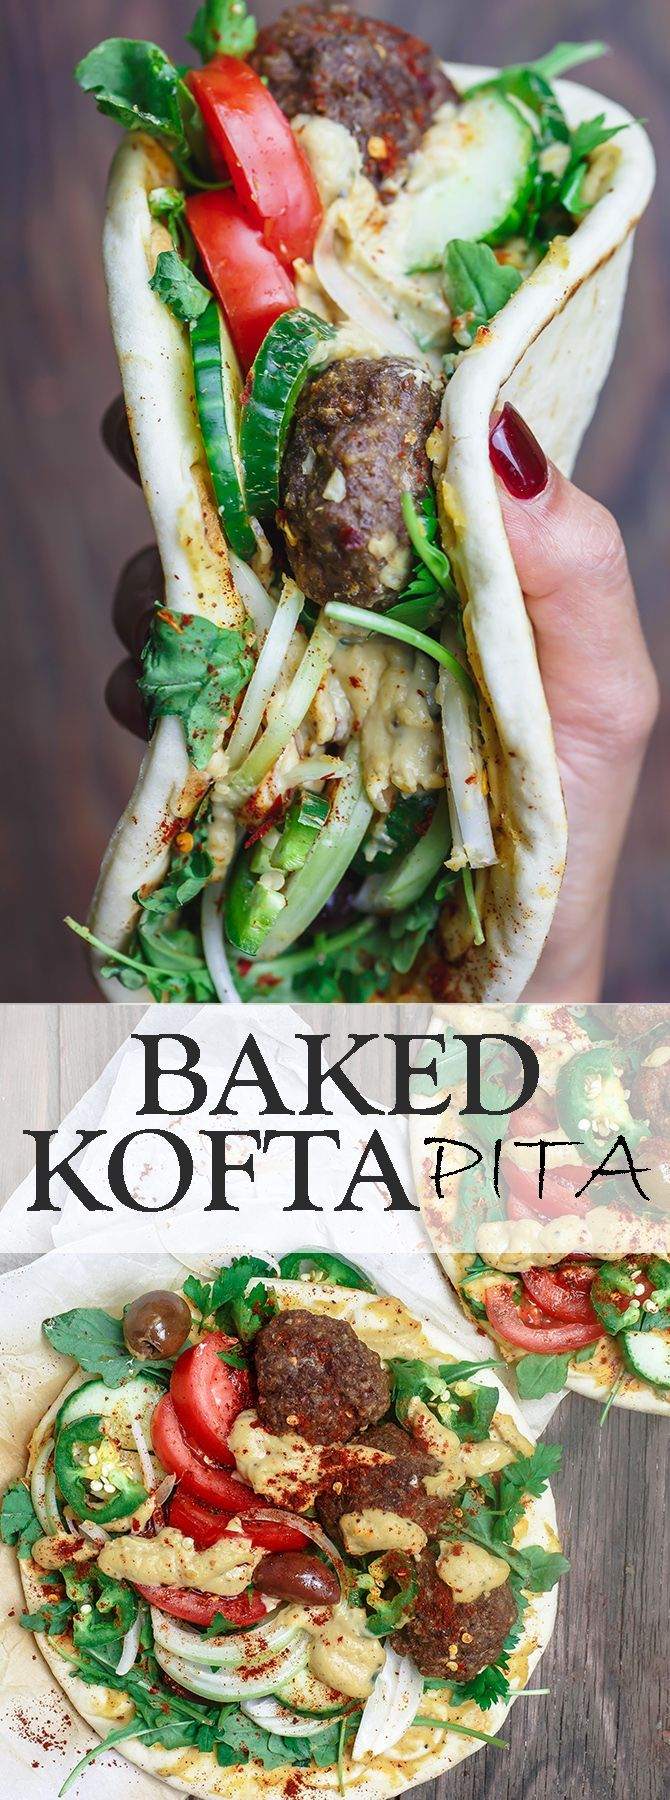 Baked Kofta Pita Sandwich | The Mediterranean Dish. Baked ground lamb kofta patties, flavored with warm Mediterranean spices, served on Greek pita with fresh veggies and hummus spread. Make it for an easy dinner, or setup a make-your-own-sandwich bar for your next party! See it step-by-step on http://TheMediterraneanDish.com #SabraSpreads